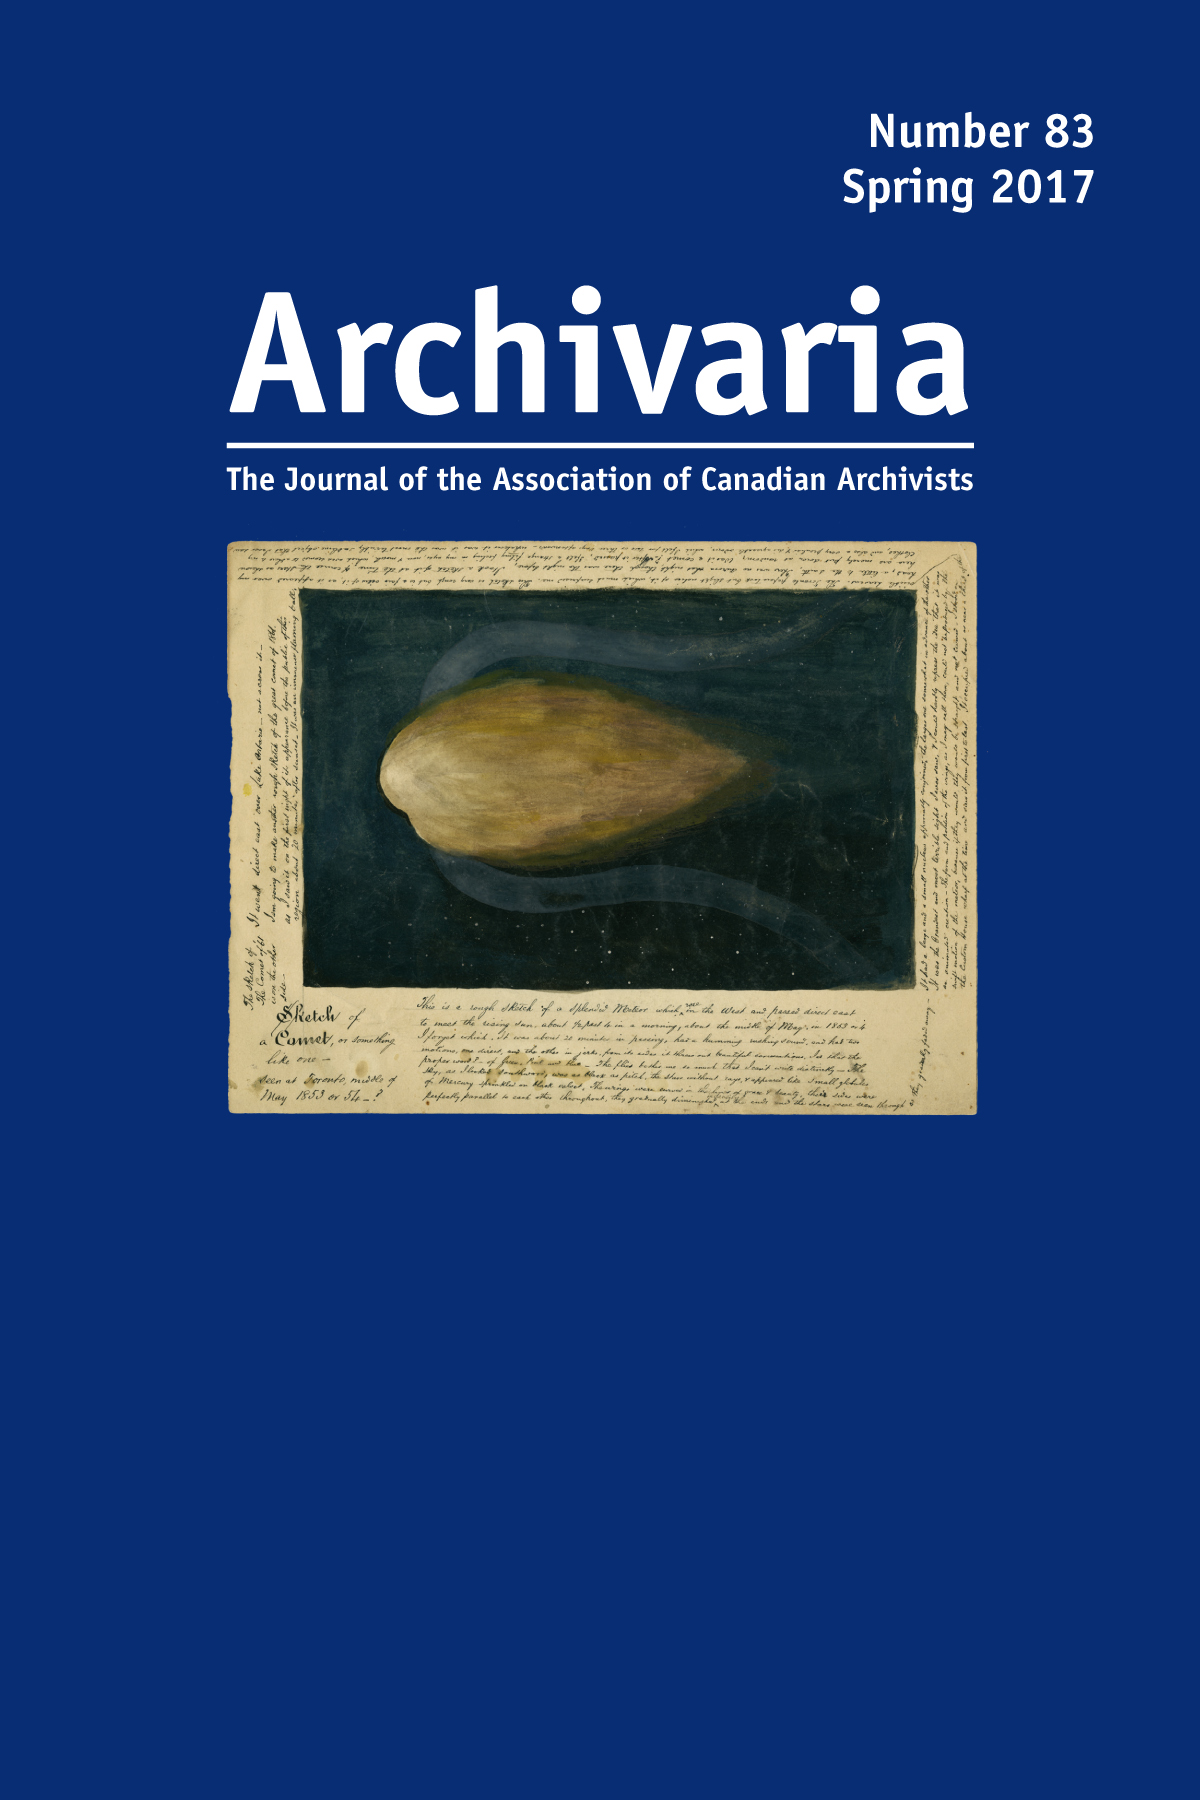 Archivaria 83 cover